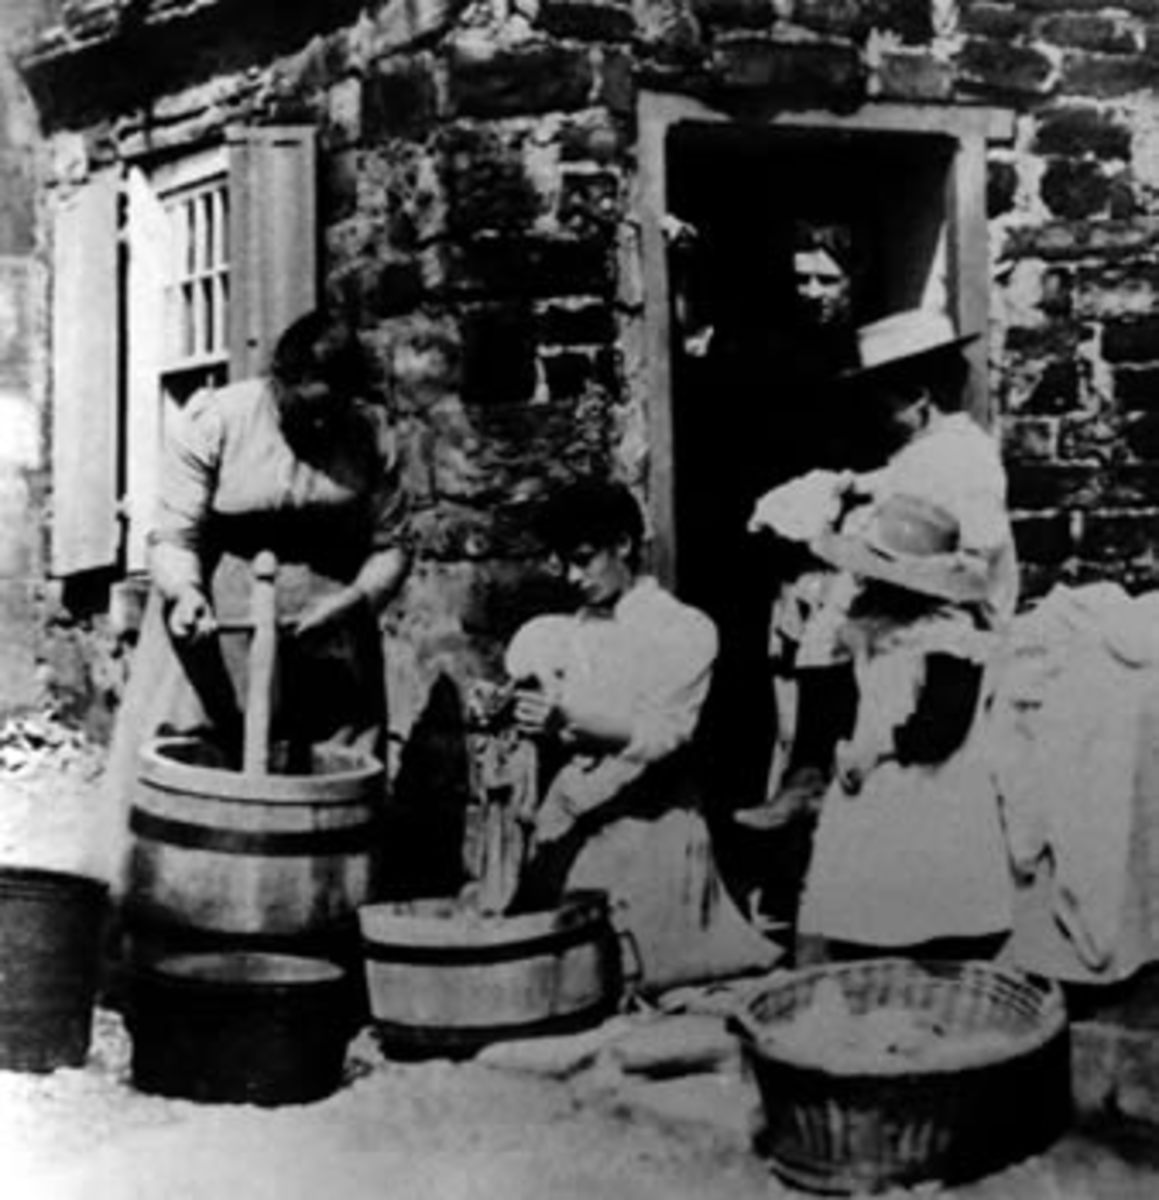 laundress-in-the-civil-war-how-did-they-wash-those-clothes